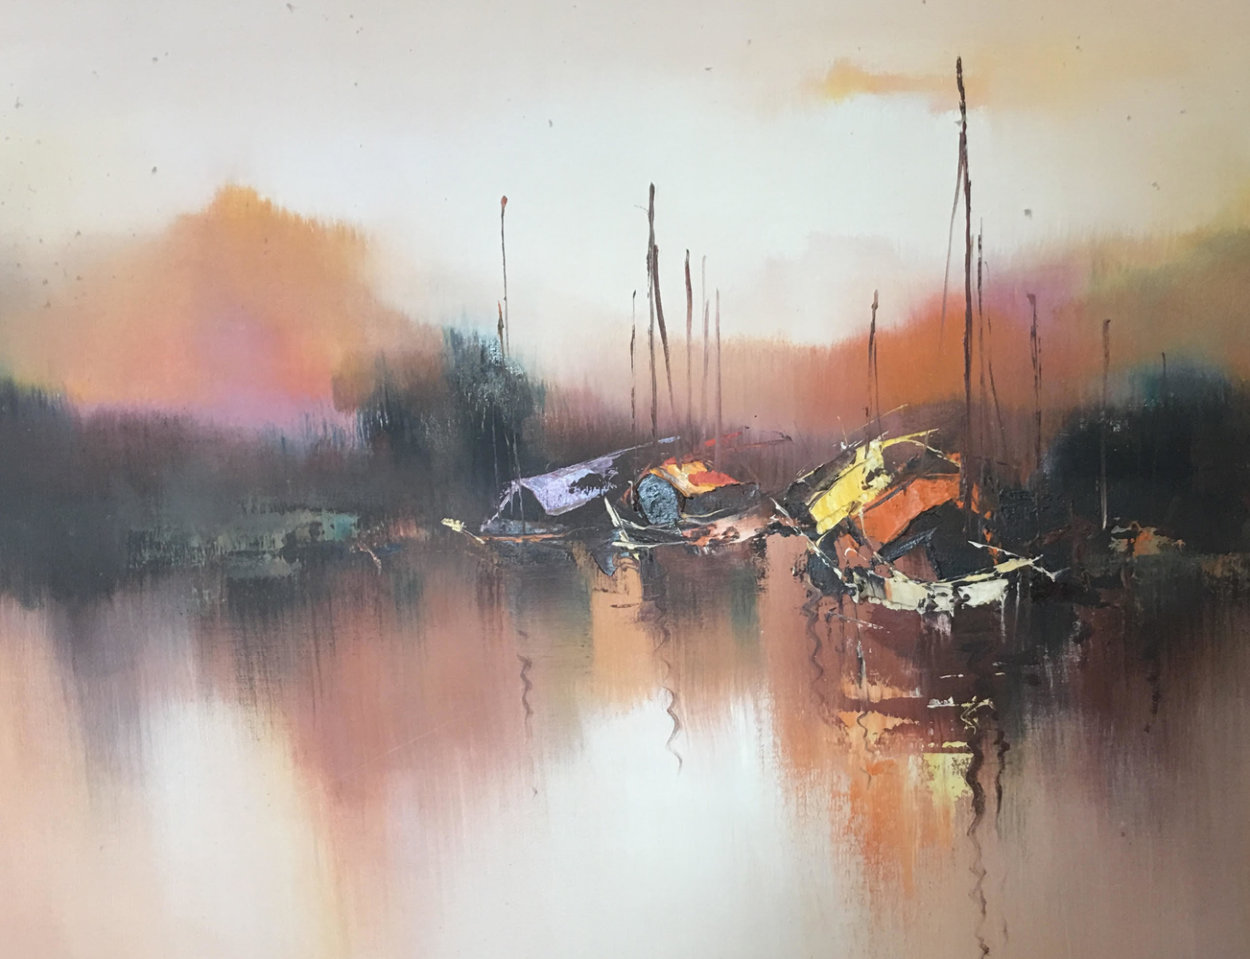 Marine 1976 24x36 Original Painting by Hong Leung